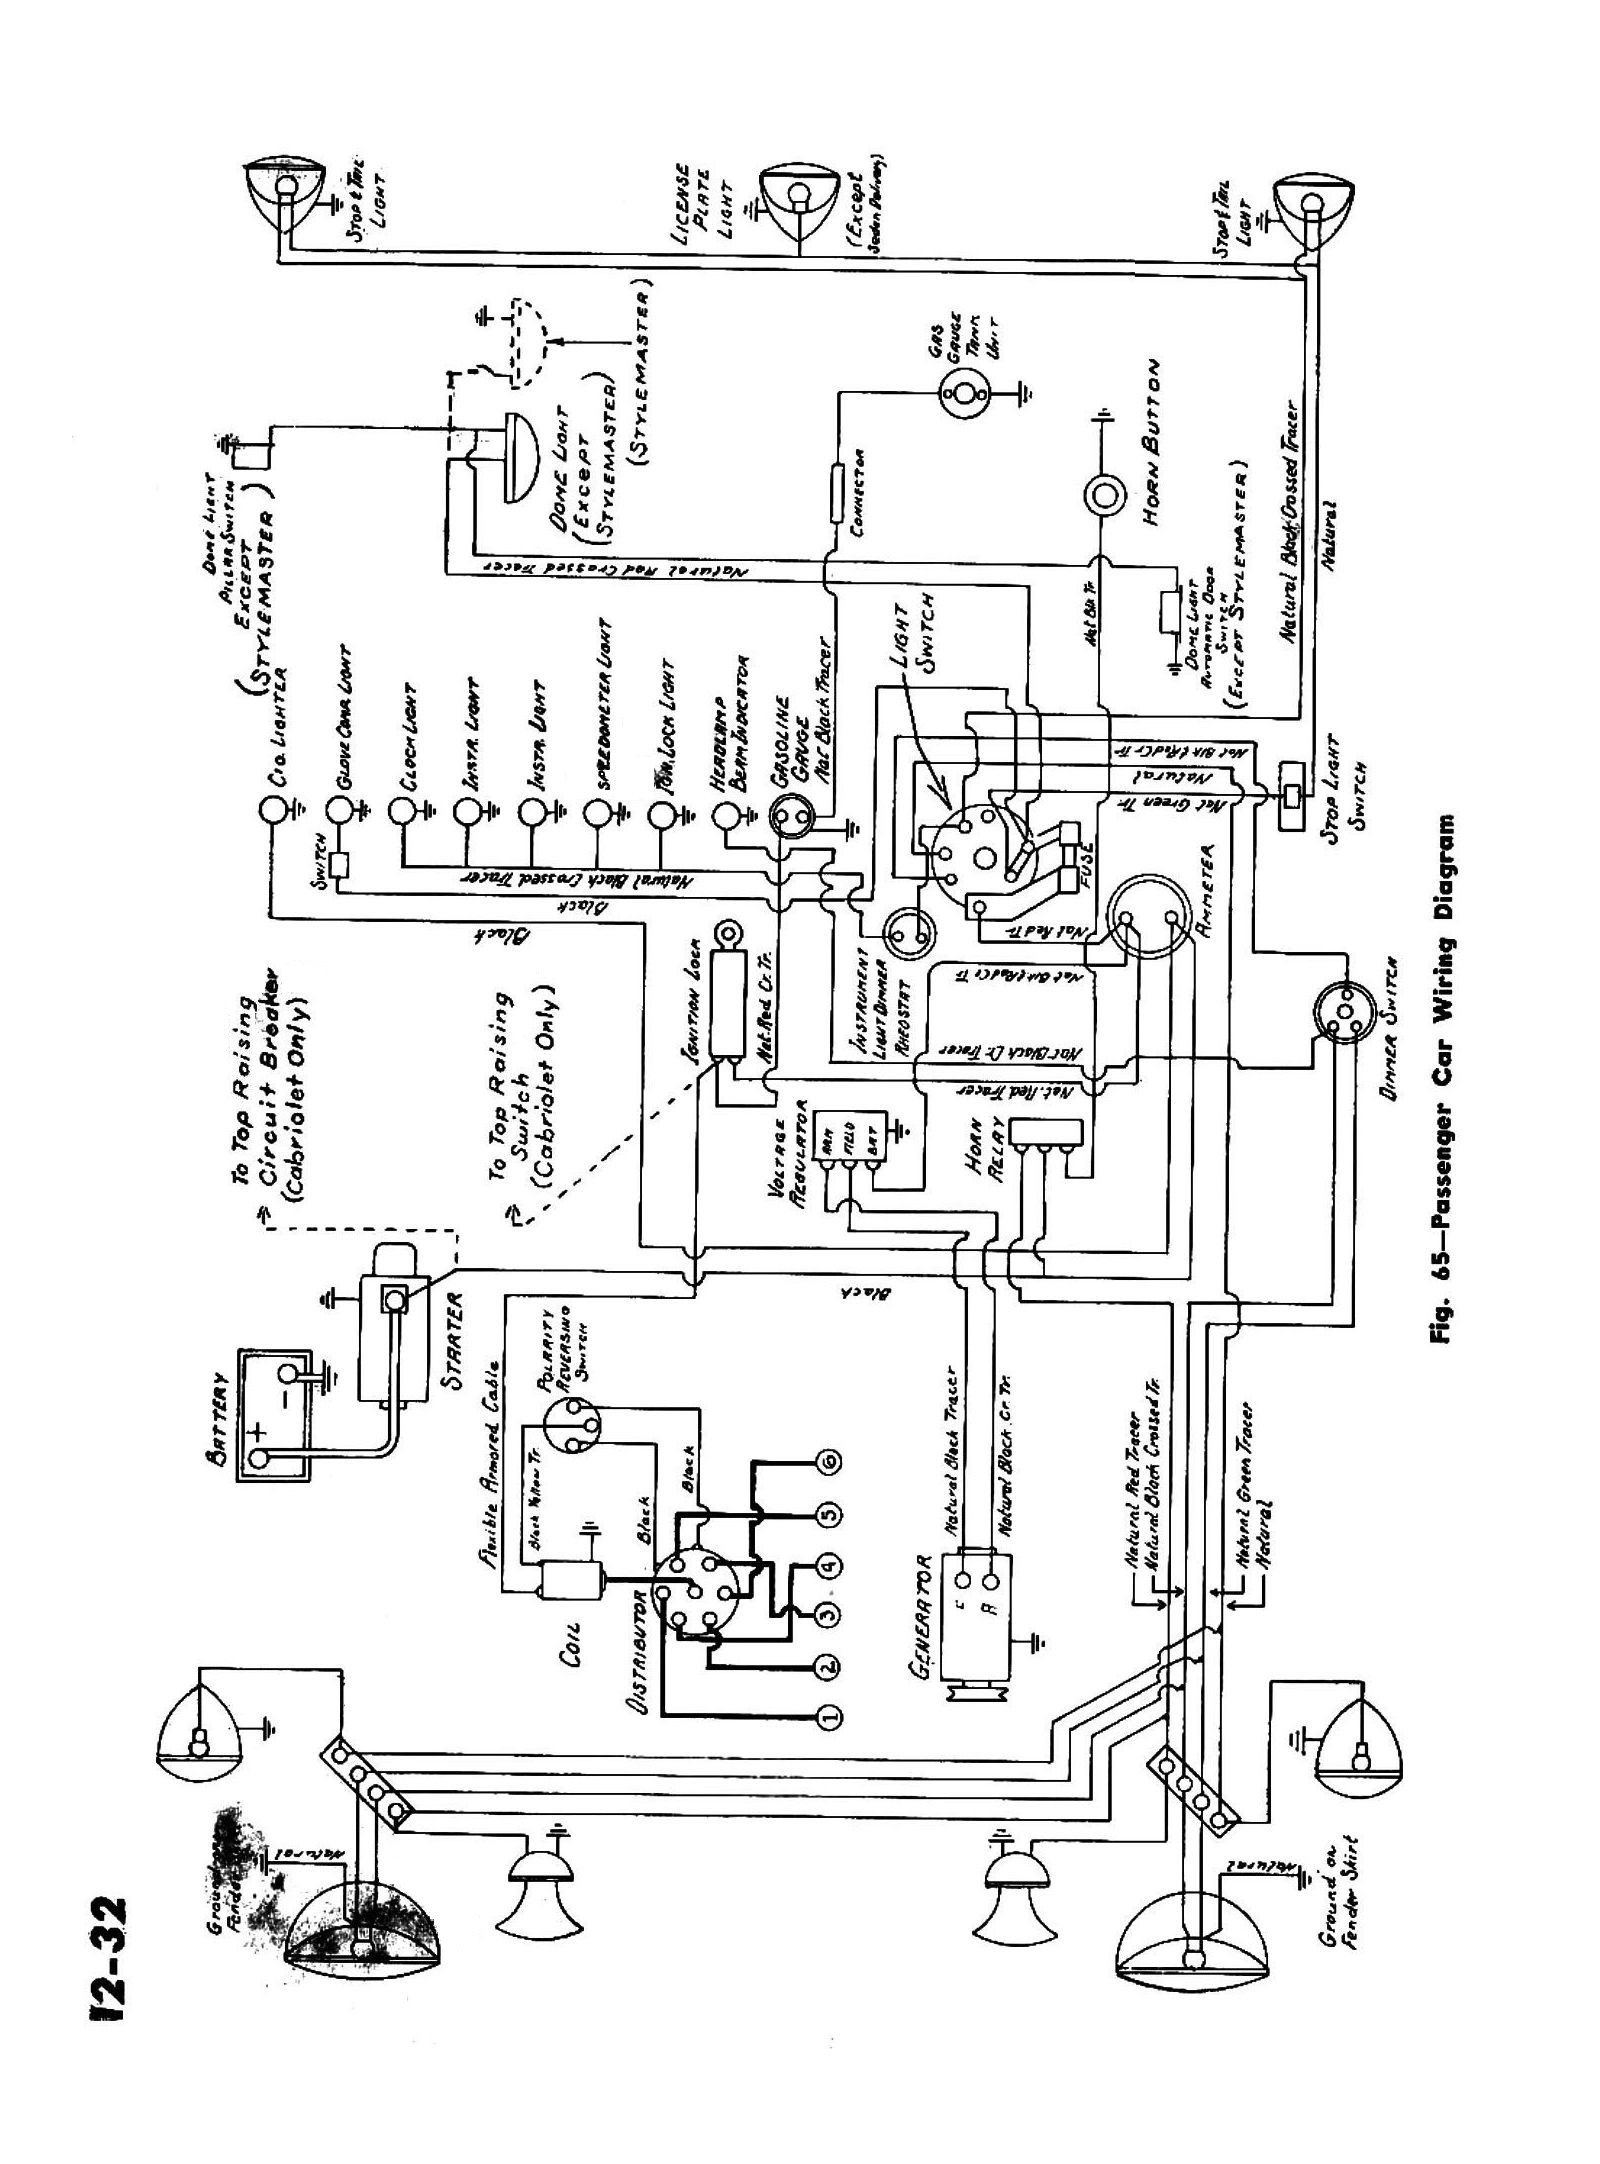 Chevy wiring diagrams 1945 passenger car wiring publicscrutiny Image collections